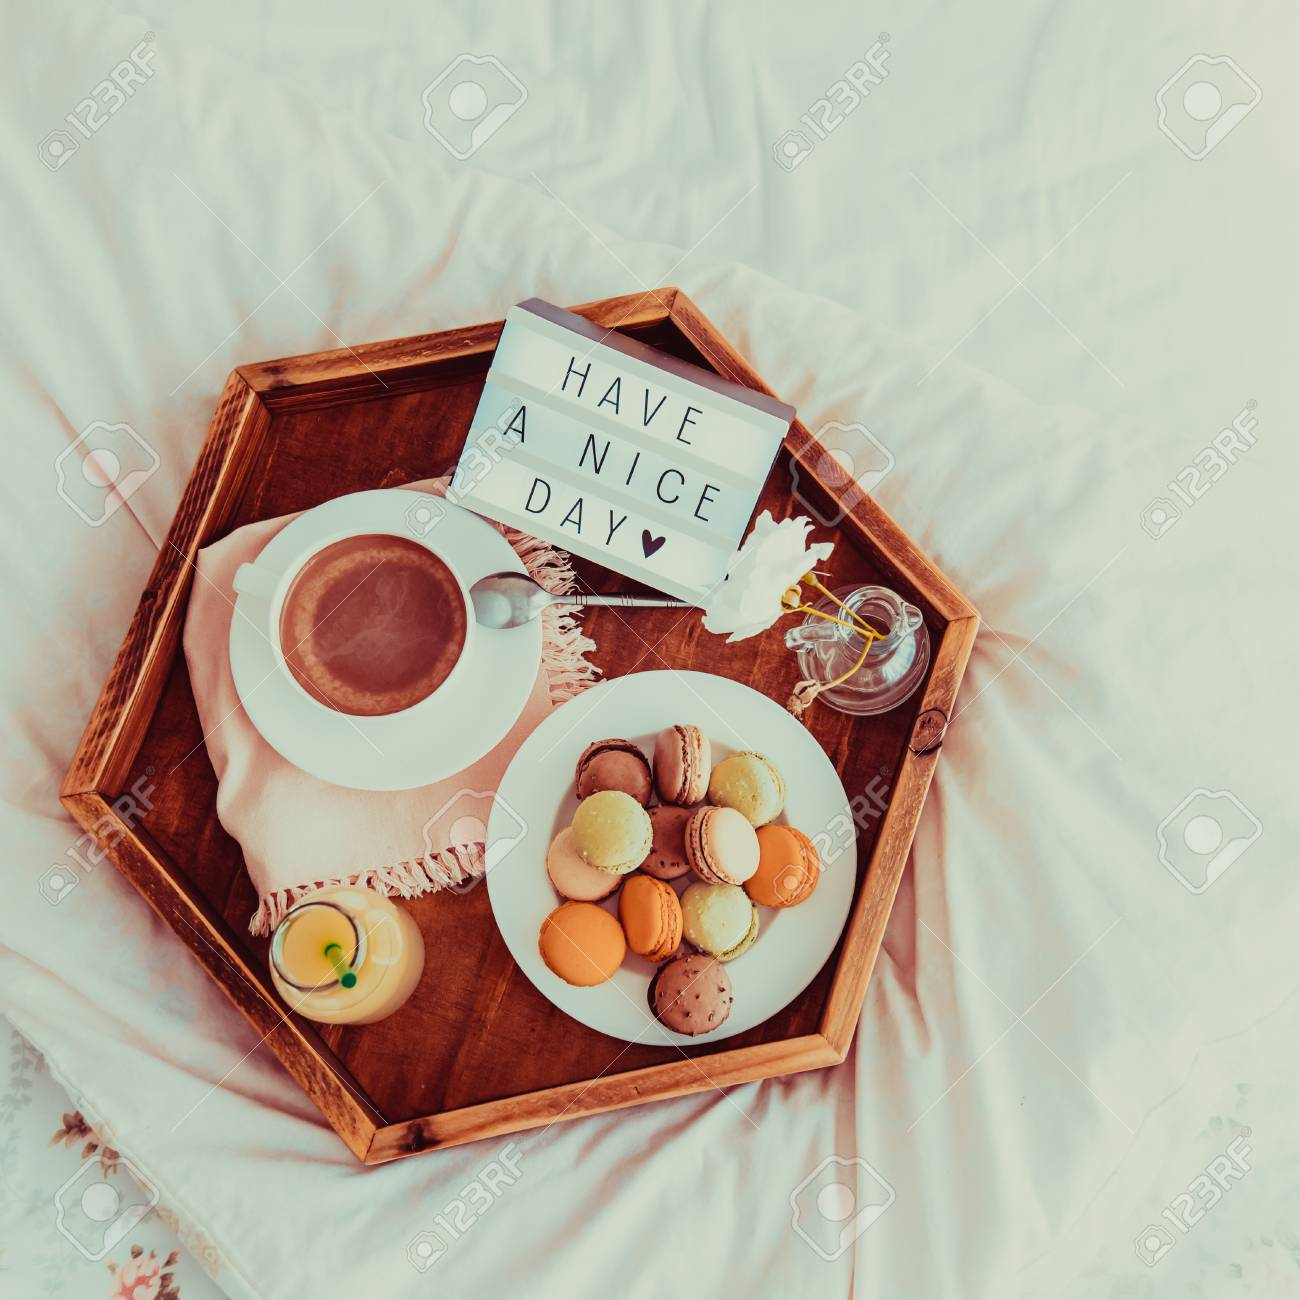 Top View Breakfast In Bed With Have A Nice Day Text On Lighted Box